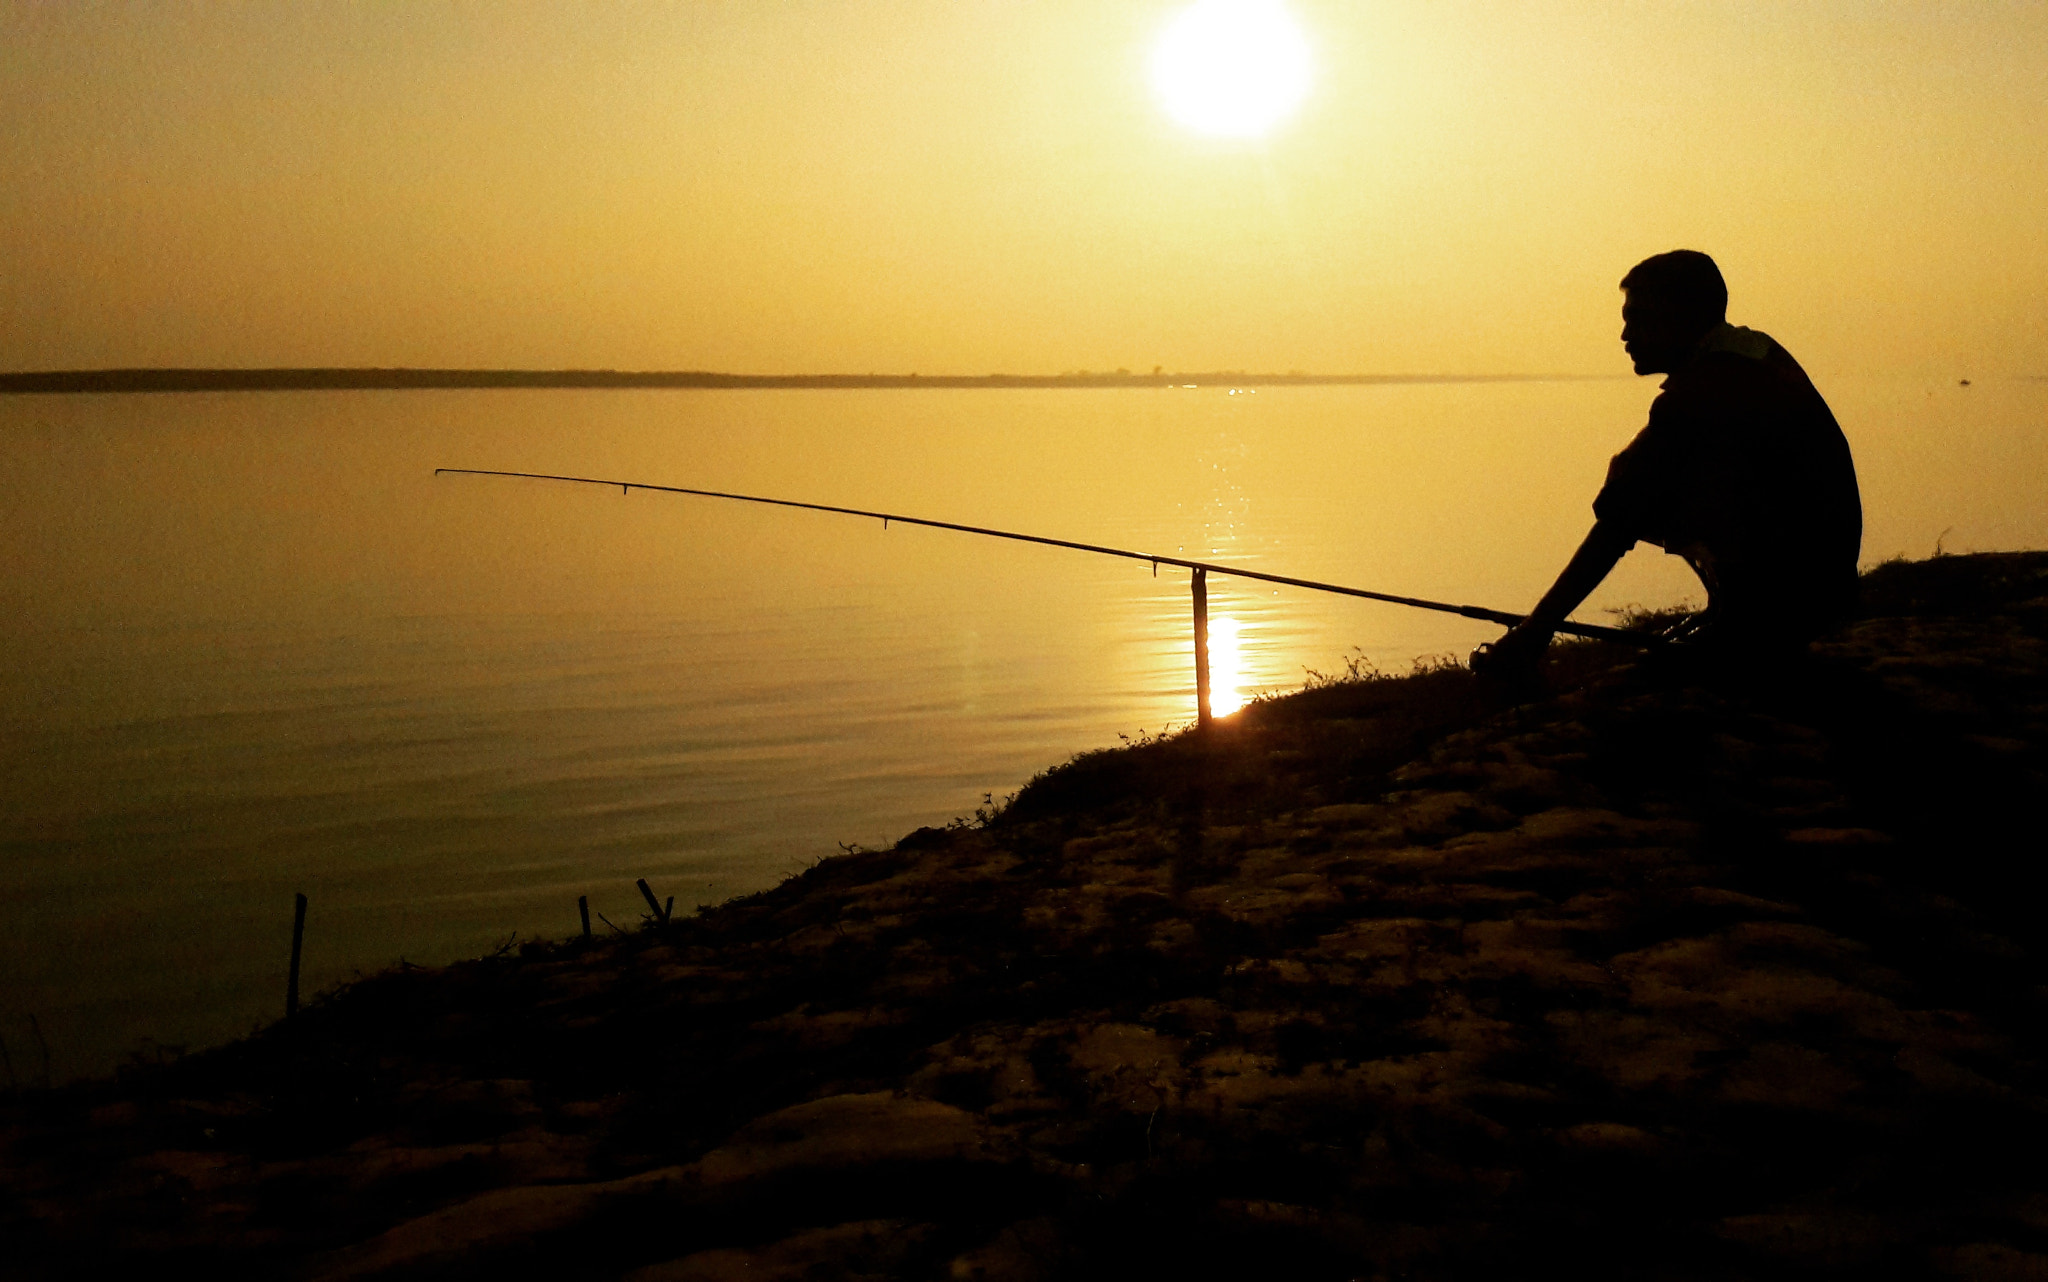 bank_of_river_a_fisherman_is_waiting_for_fish_2818674488329